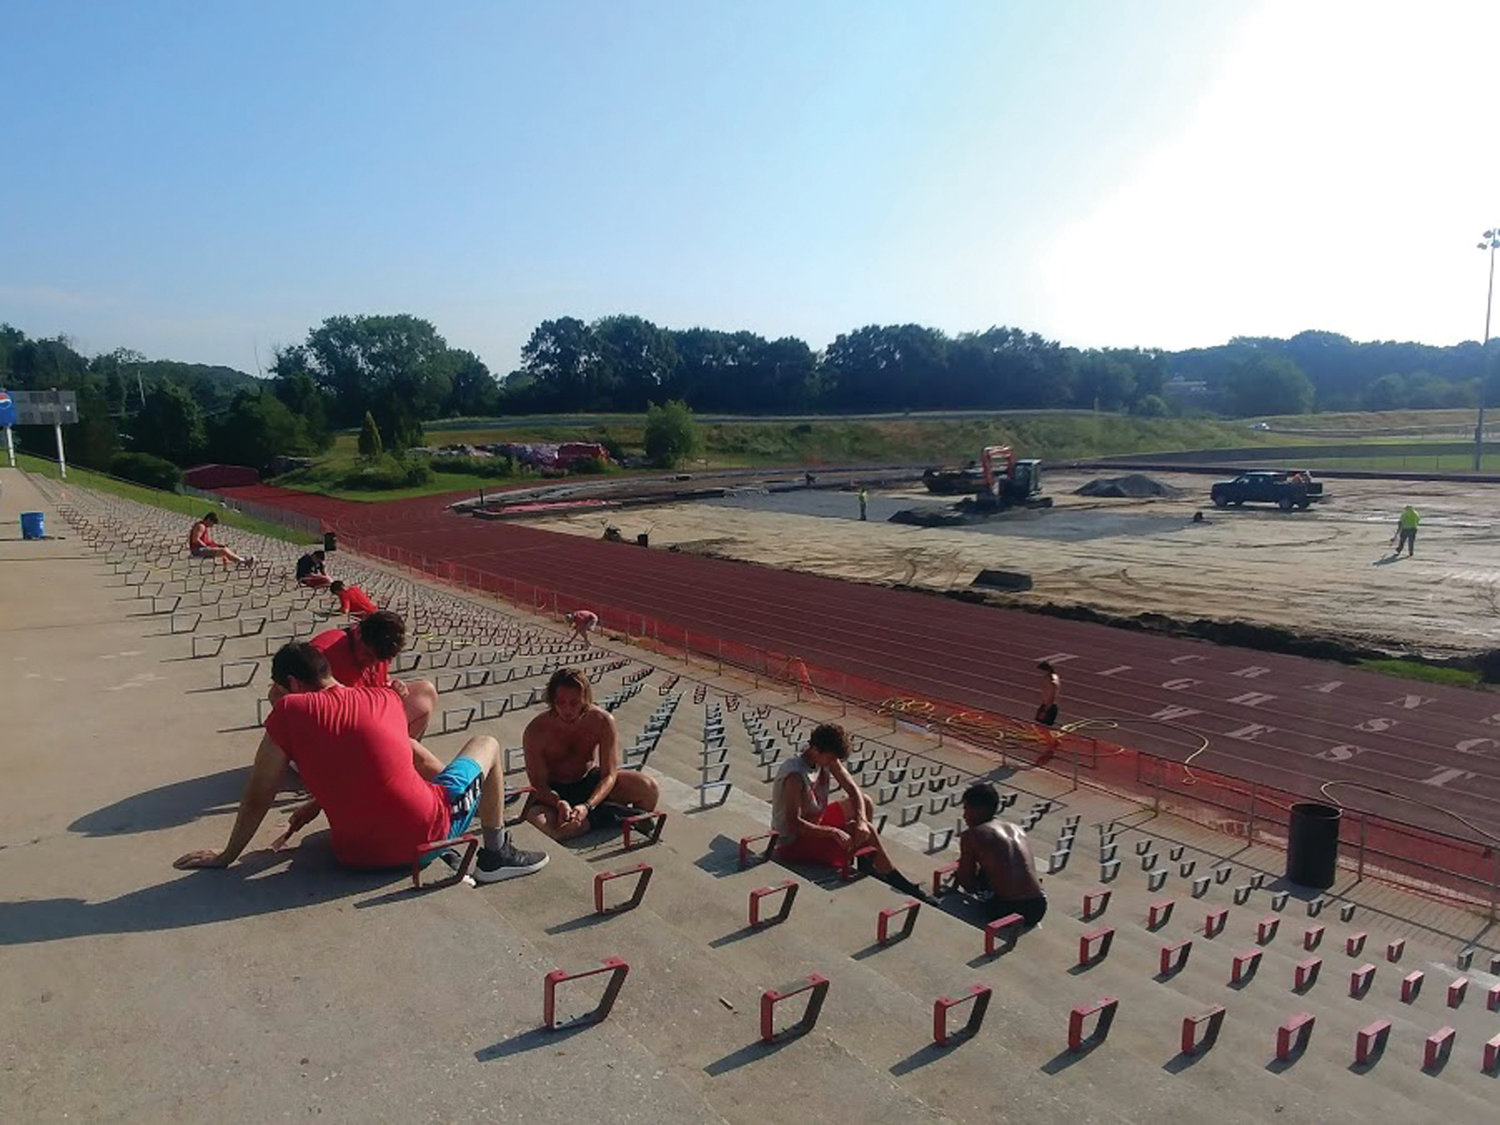 HARD AT WORK: Despite the near-100 degree heat and early morning hours, members of the Cranston High School West football team were recently hard at work on the cement stairs in the bleacher area.